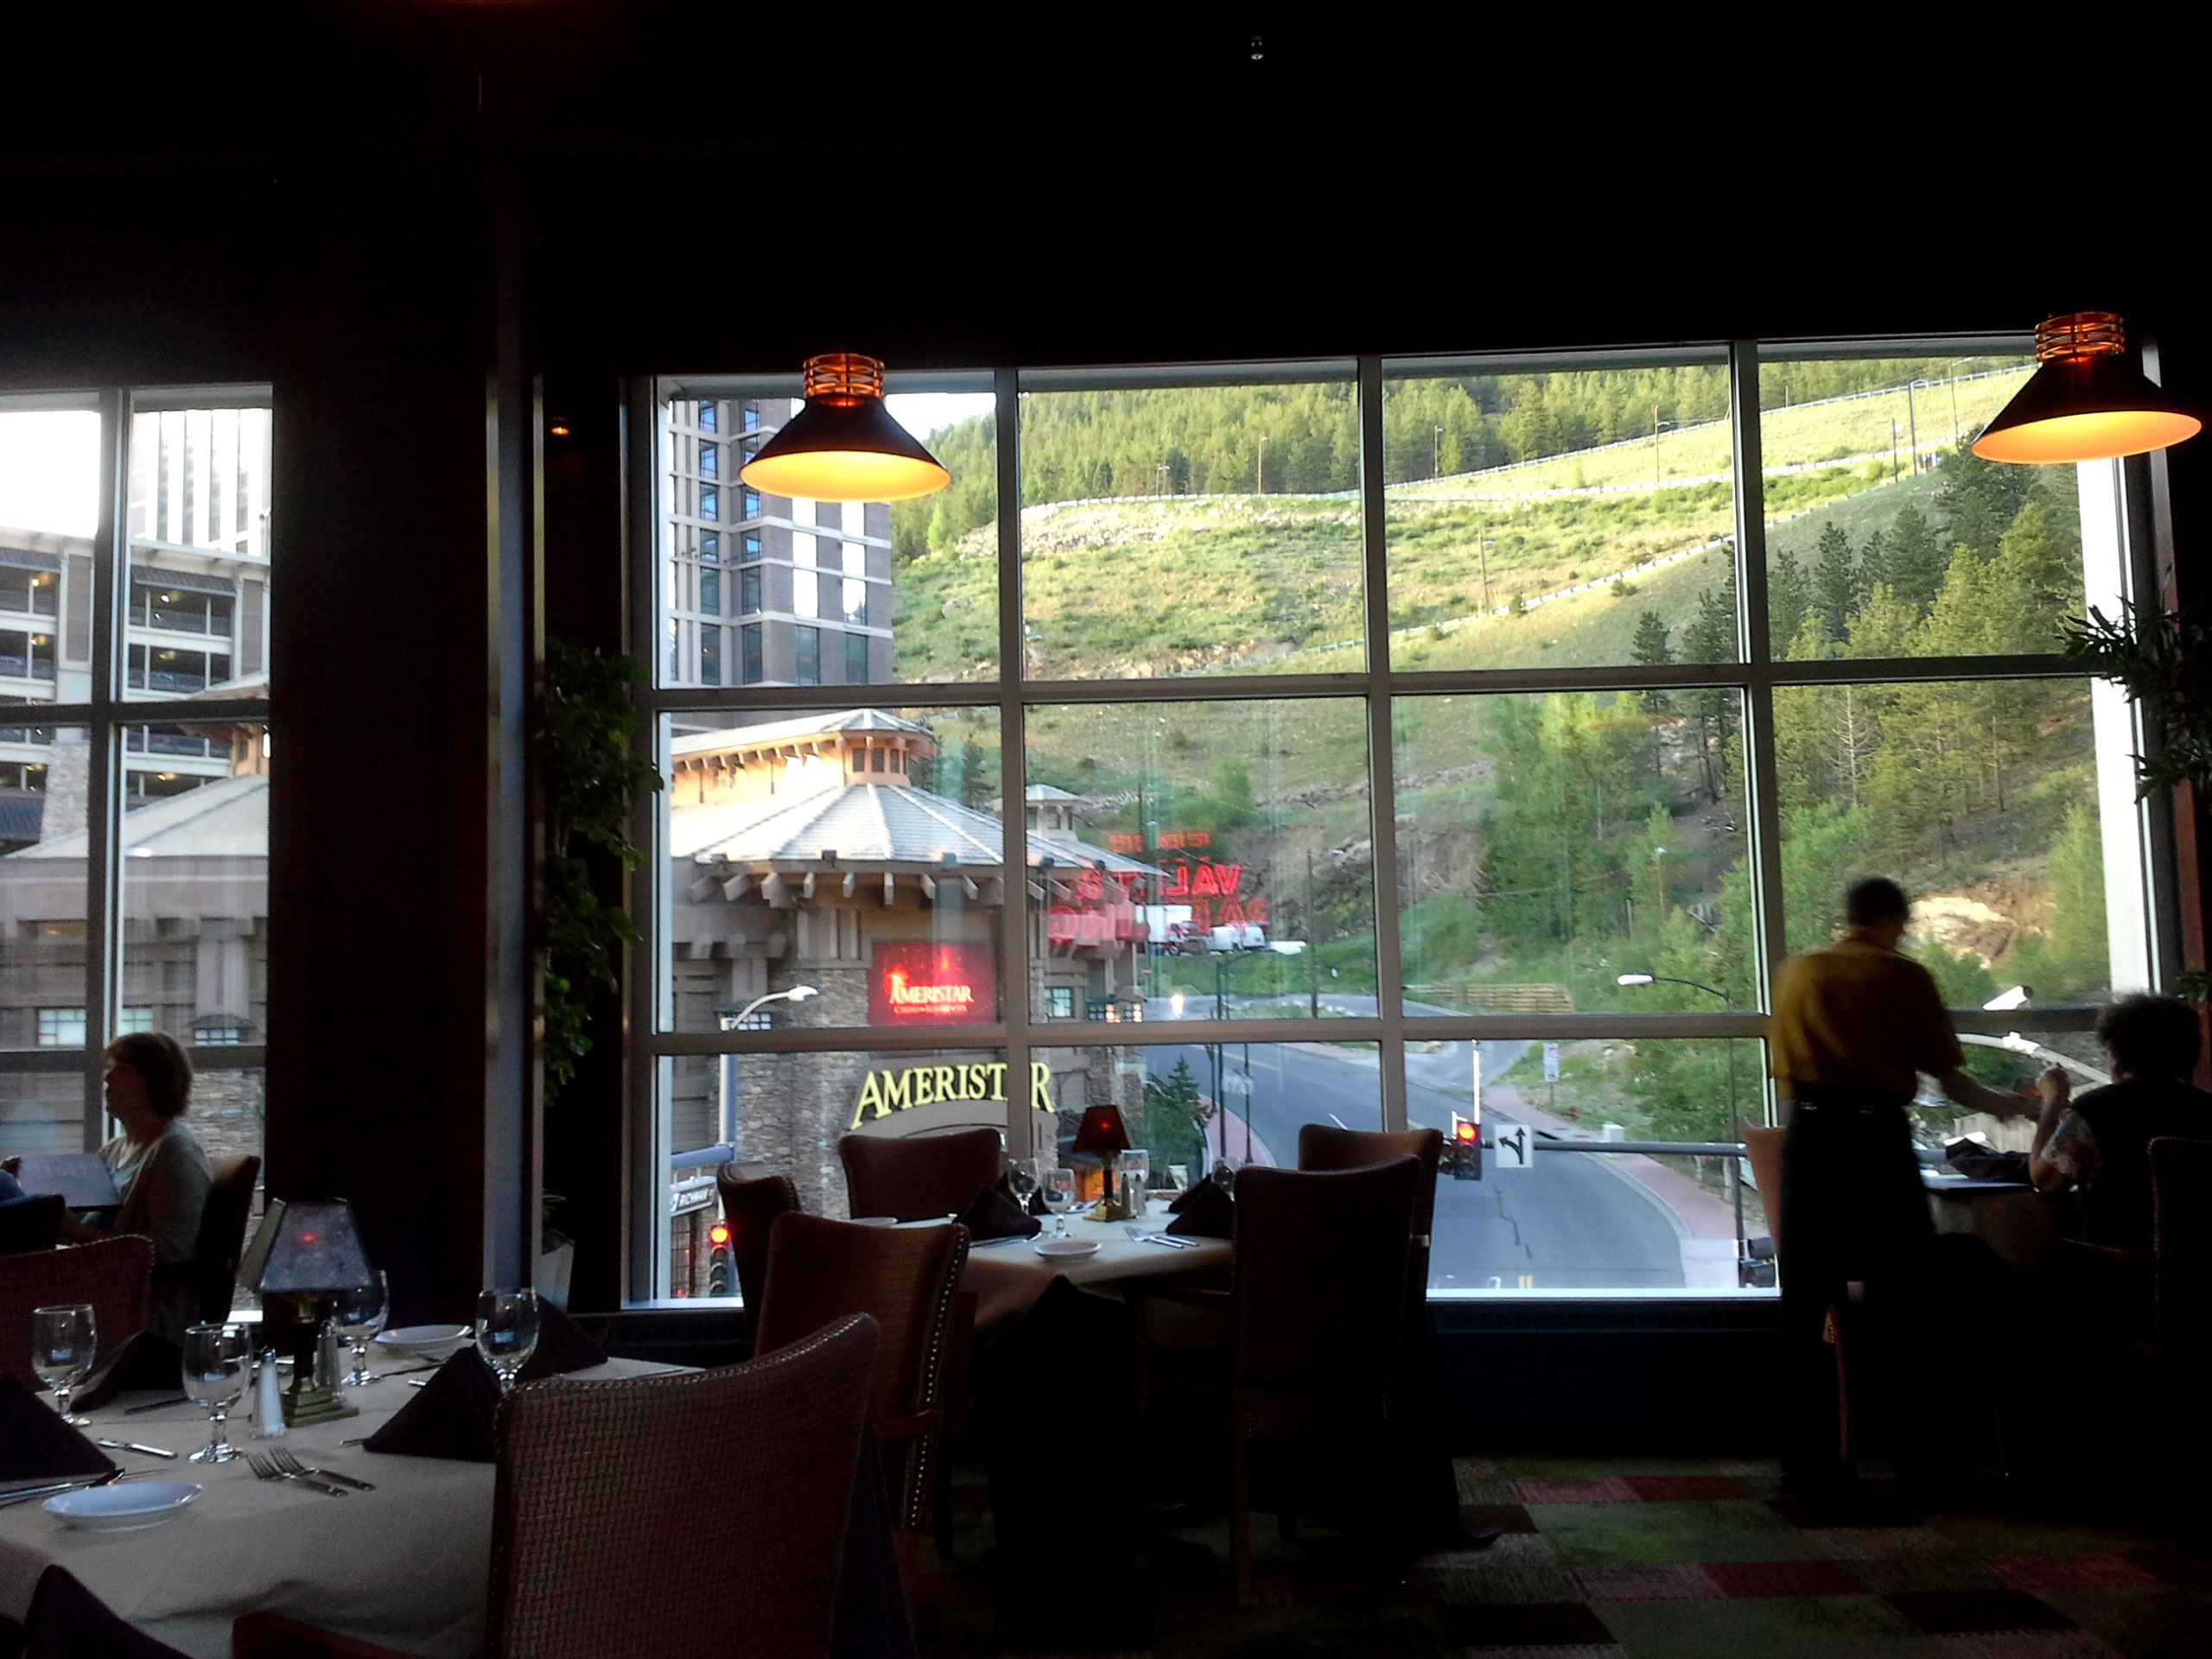 White Buffalo Grille overlooking The Ameristar Casino Hotel